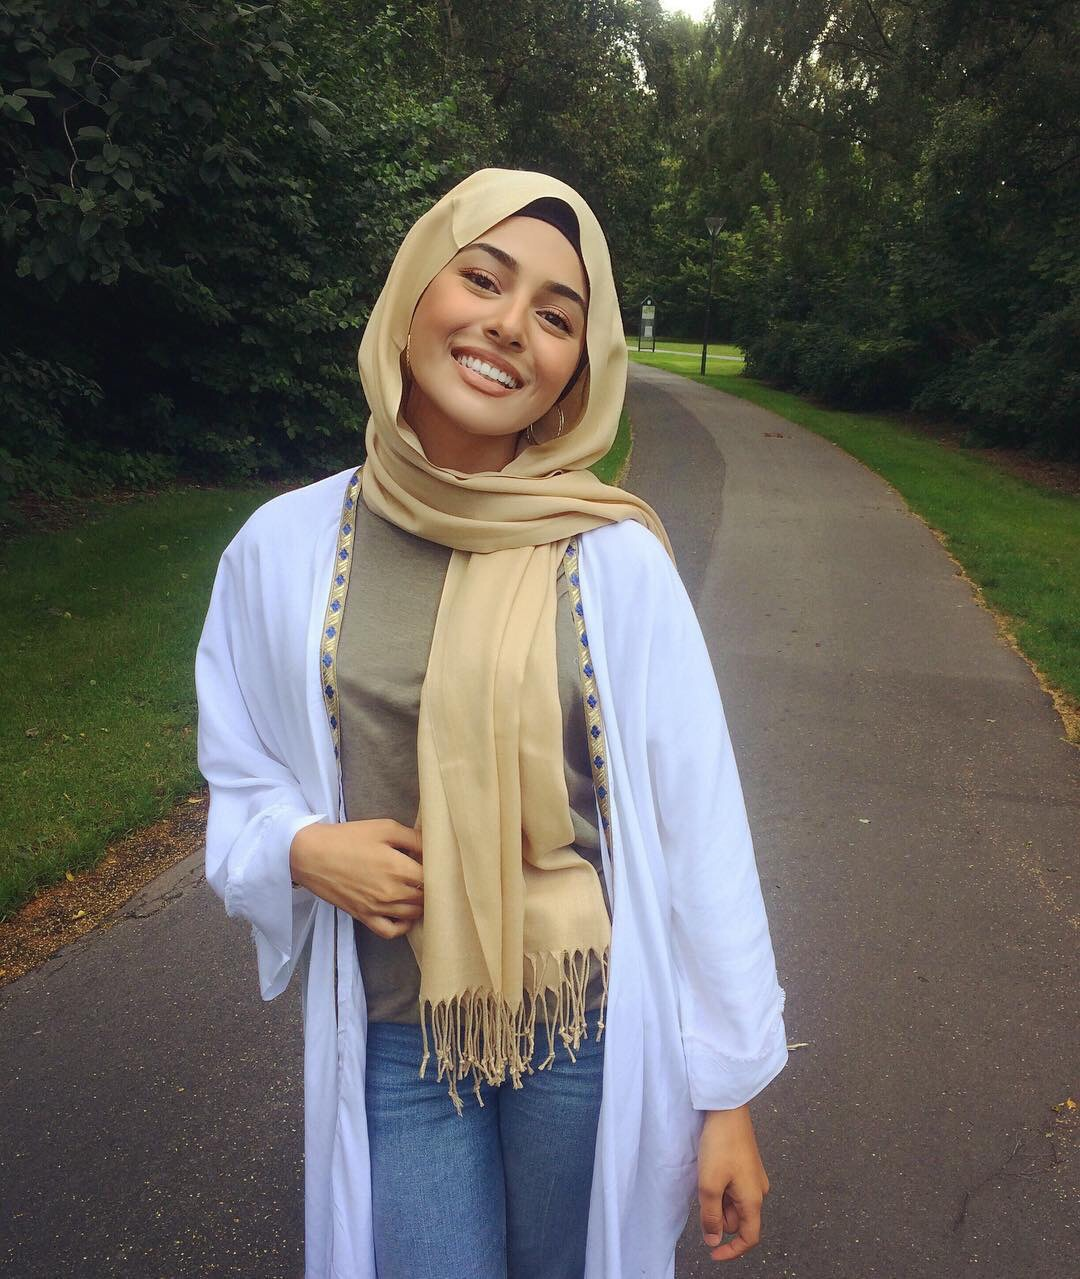 Fyne Girlz regarding 1000+ images about pretty hijab girls on we heart it   see more